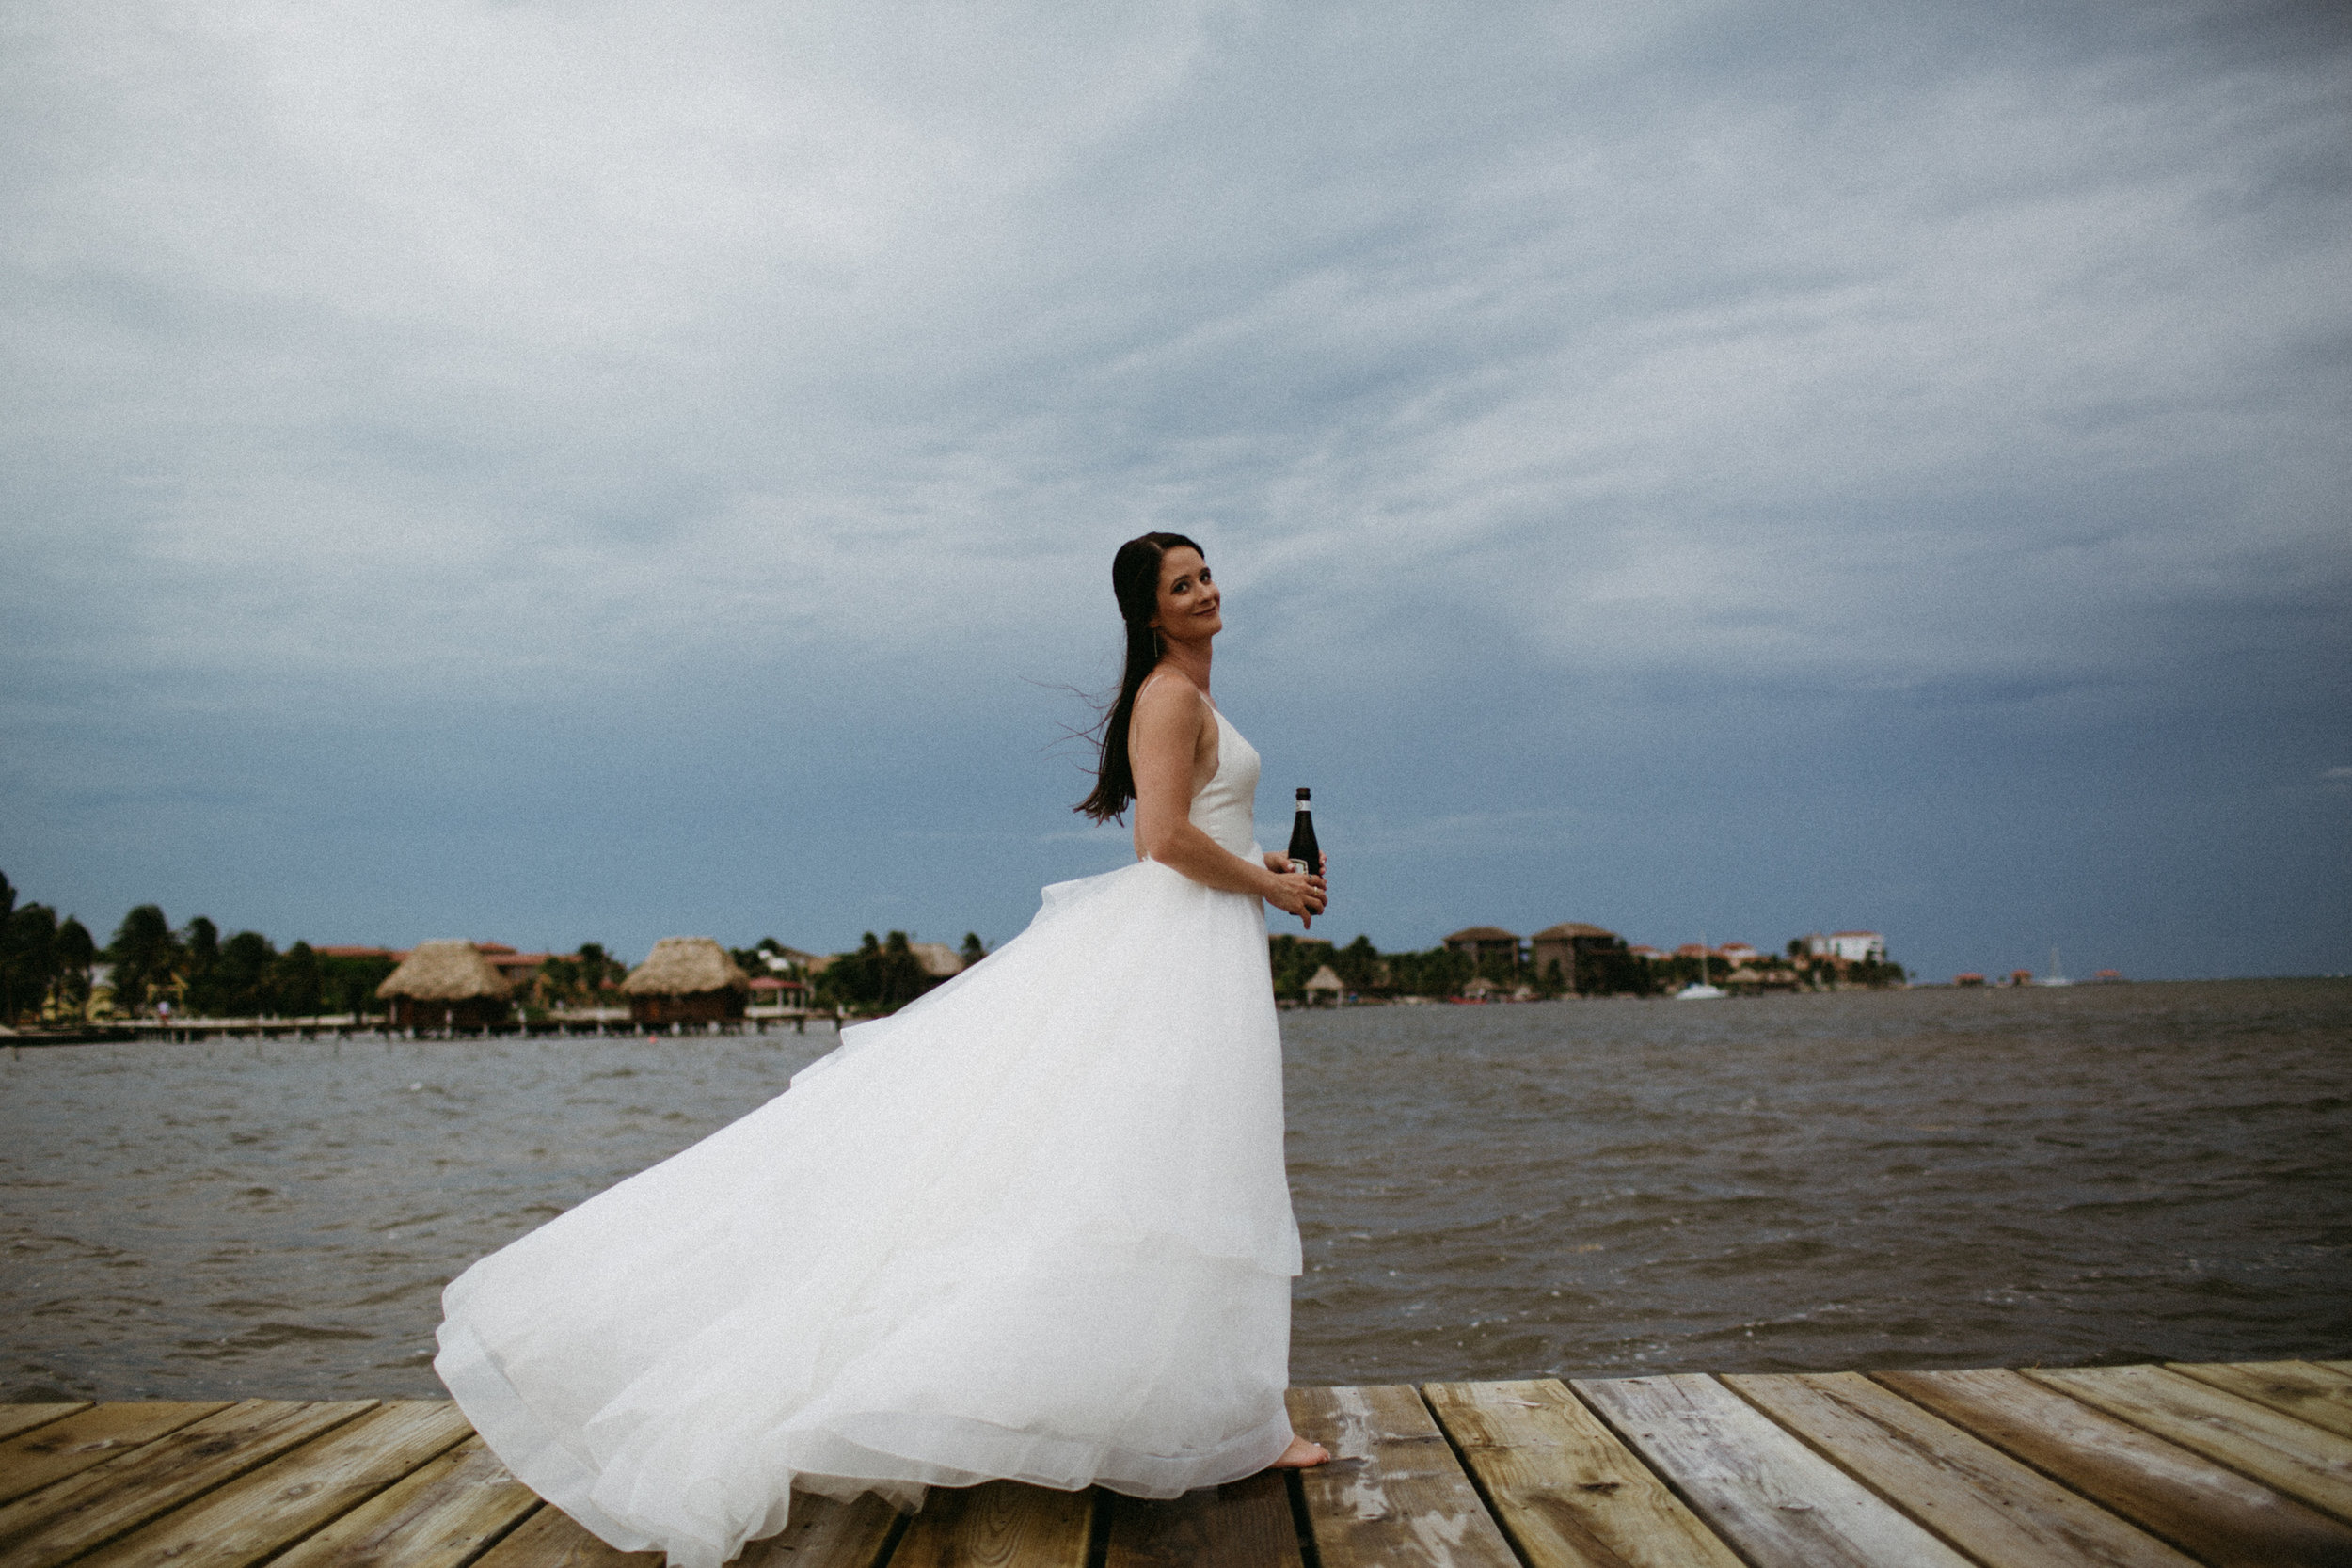 san-pescador-belize-wedding-christinemariephoto-j-k-41.jpg